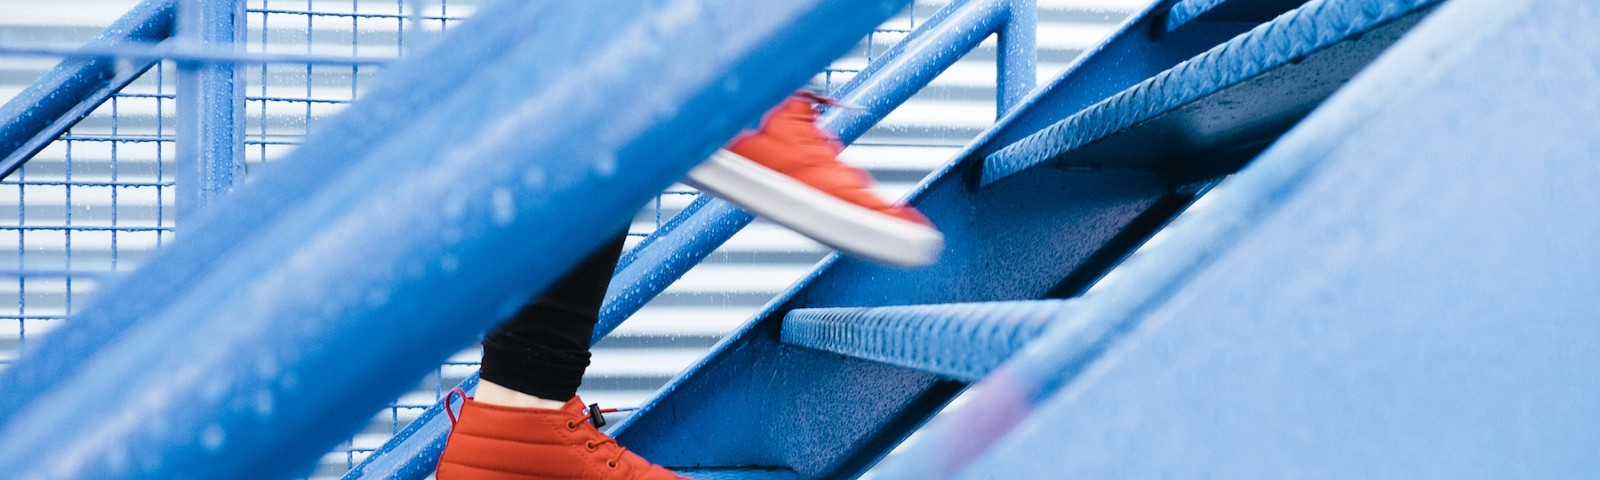 Red sneakers walking swiftly up a blue-tinged metallic staircase.